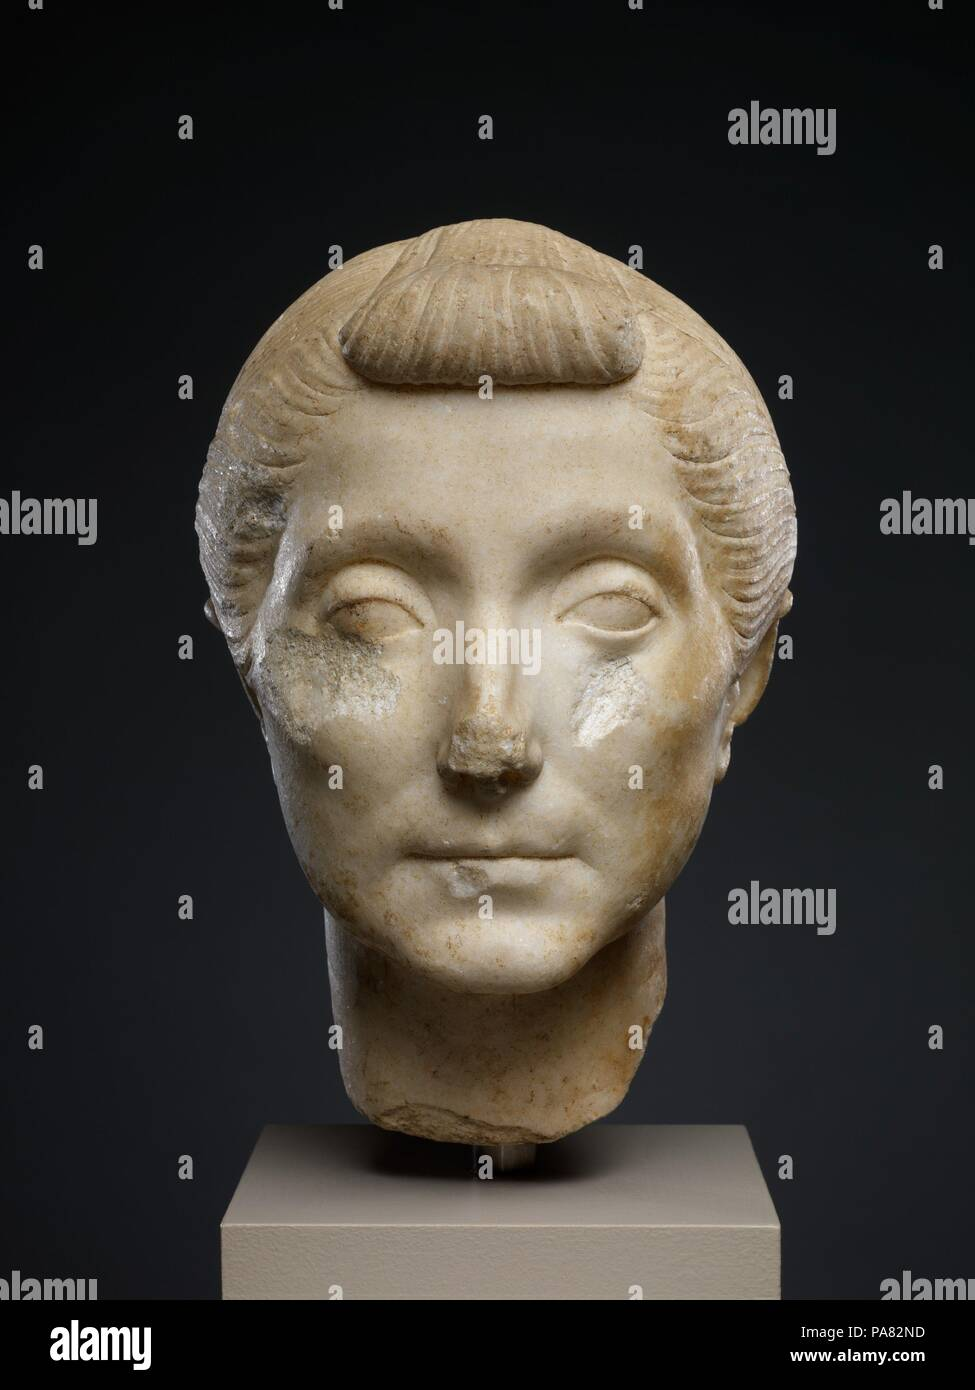 40 20 B C Stock Photos Images Alamy The Iron Bar In Uquot Shape With Dimensions As Shown Diagram Marble Head Of An Elderly Woman Culture Roman 10 1